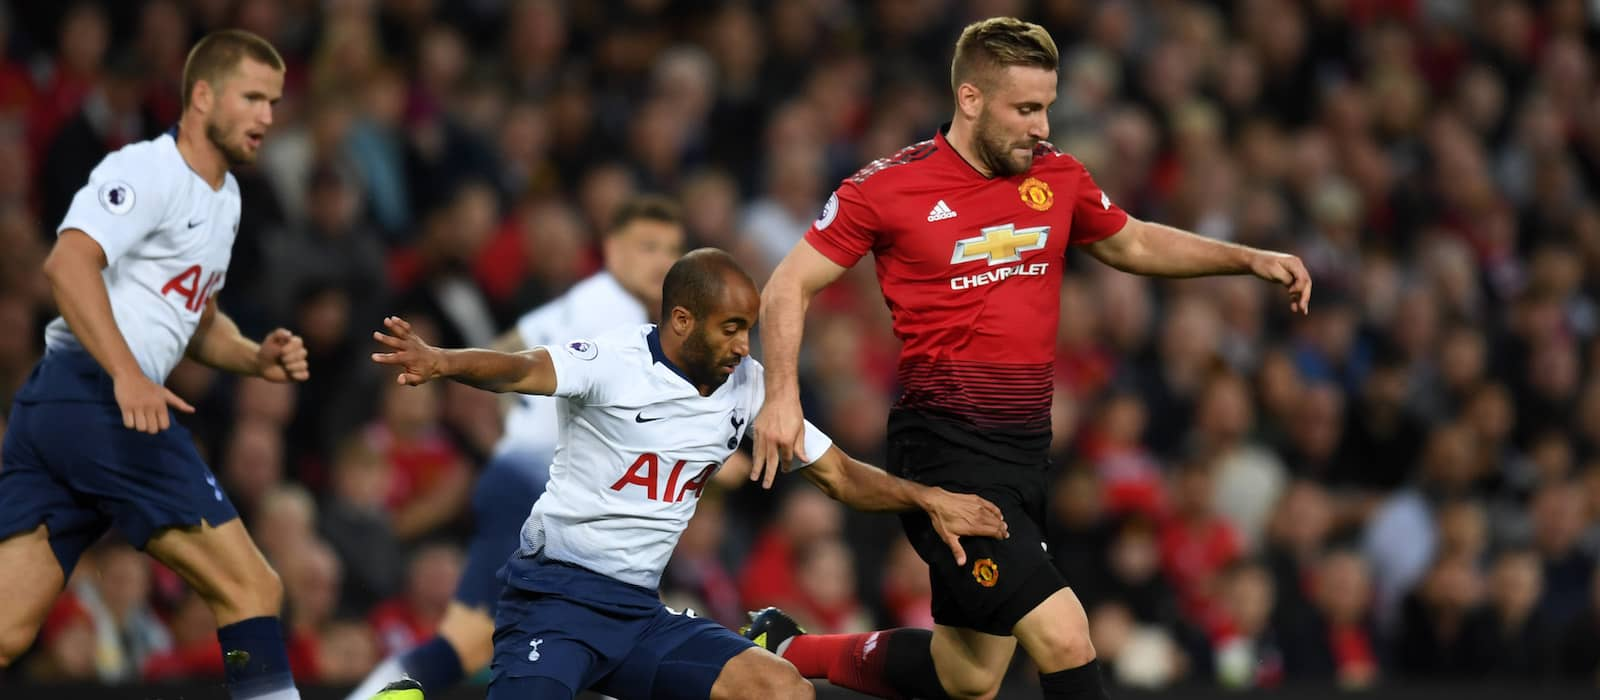 Jose Mourinho confirms Luke Shaw could play against Watford